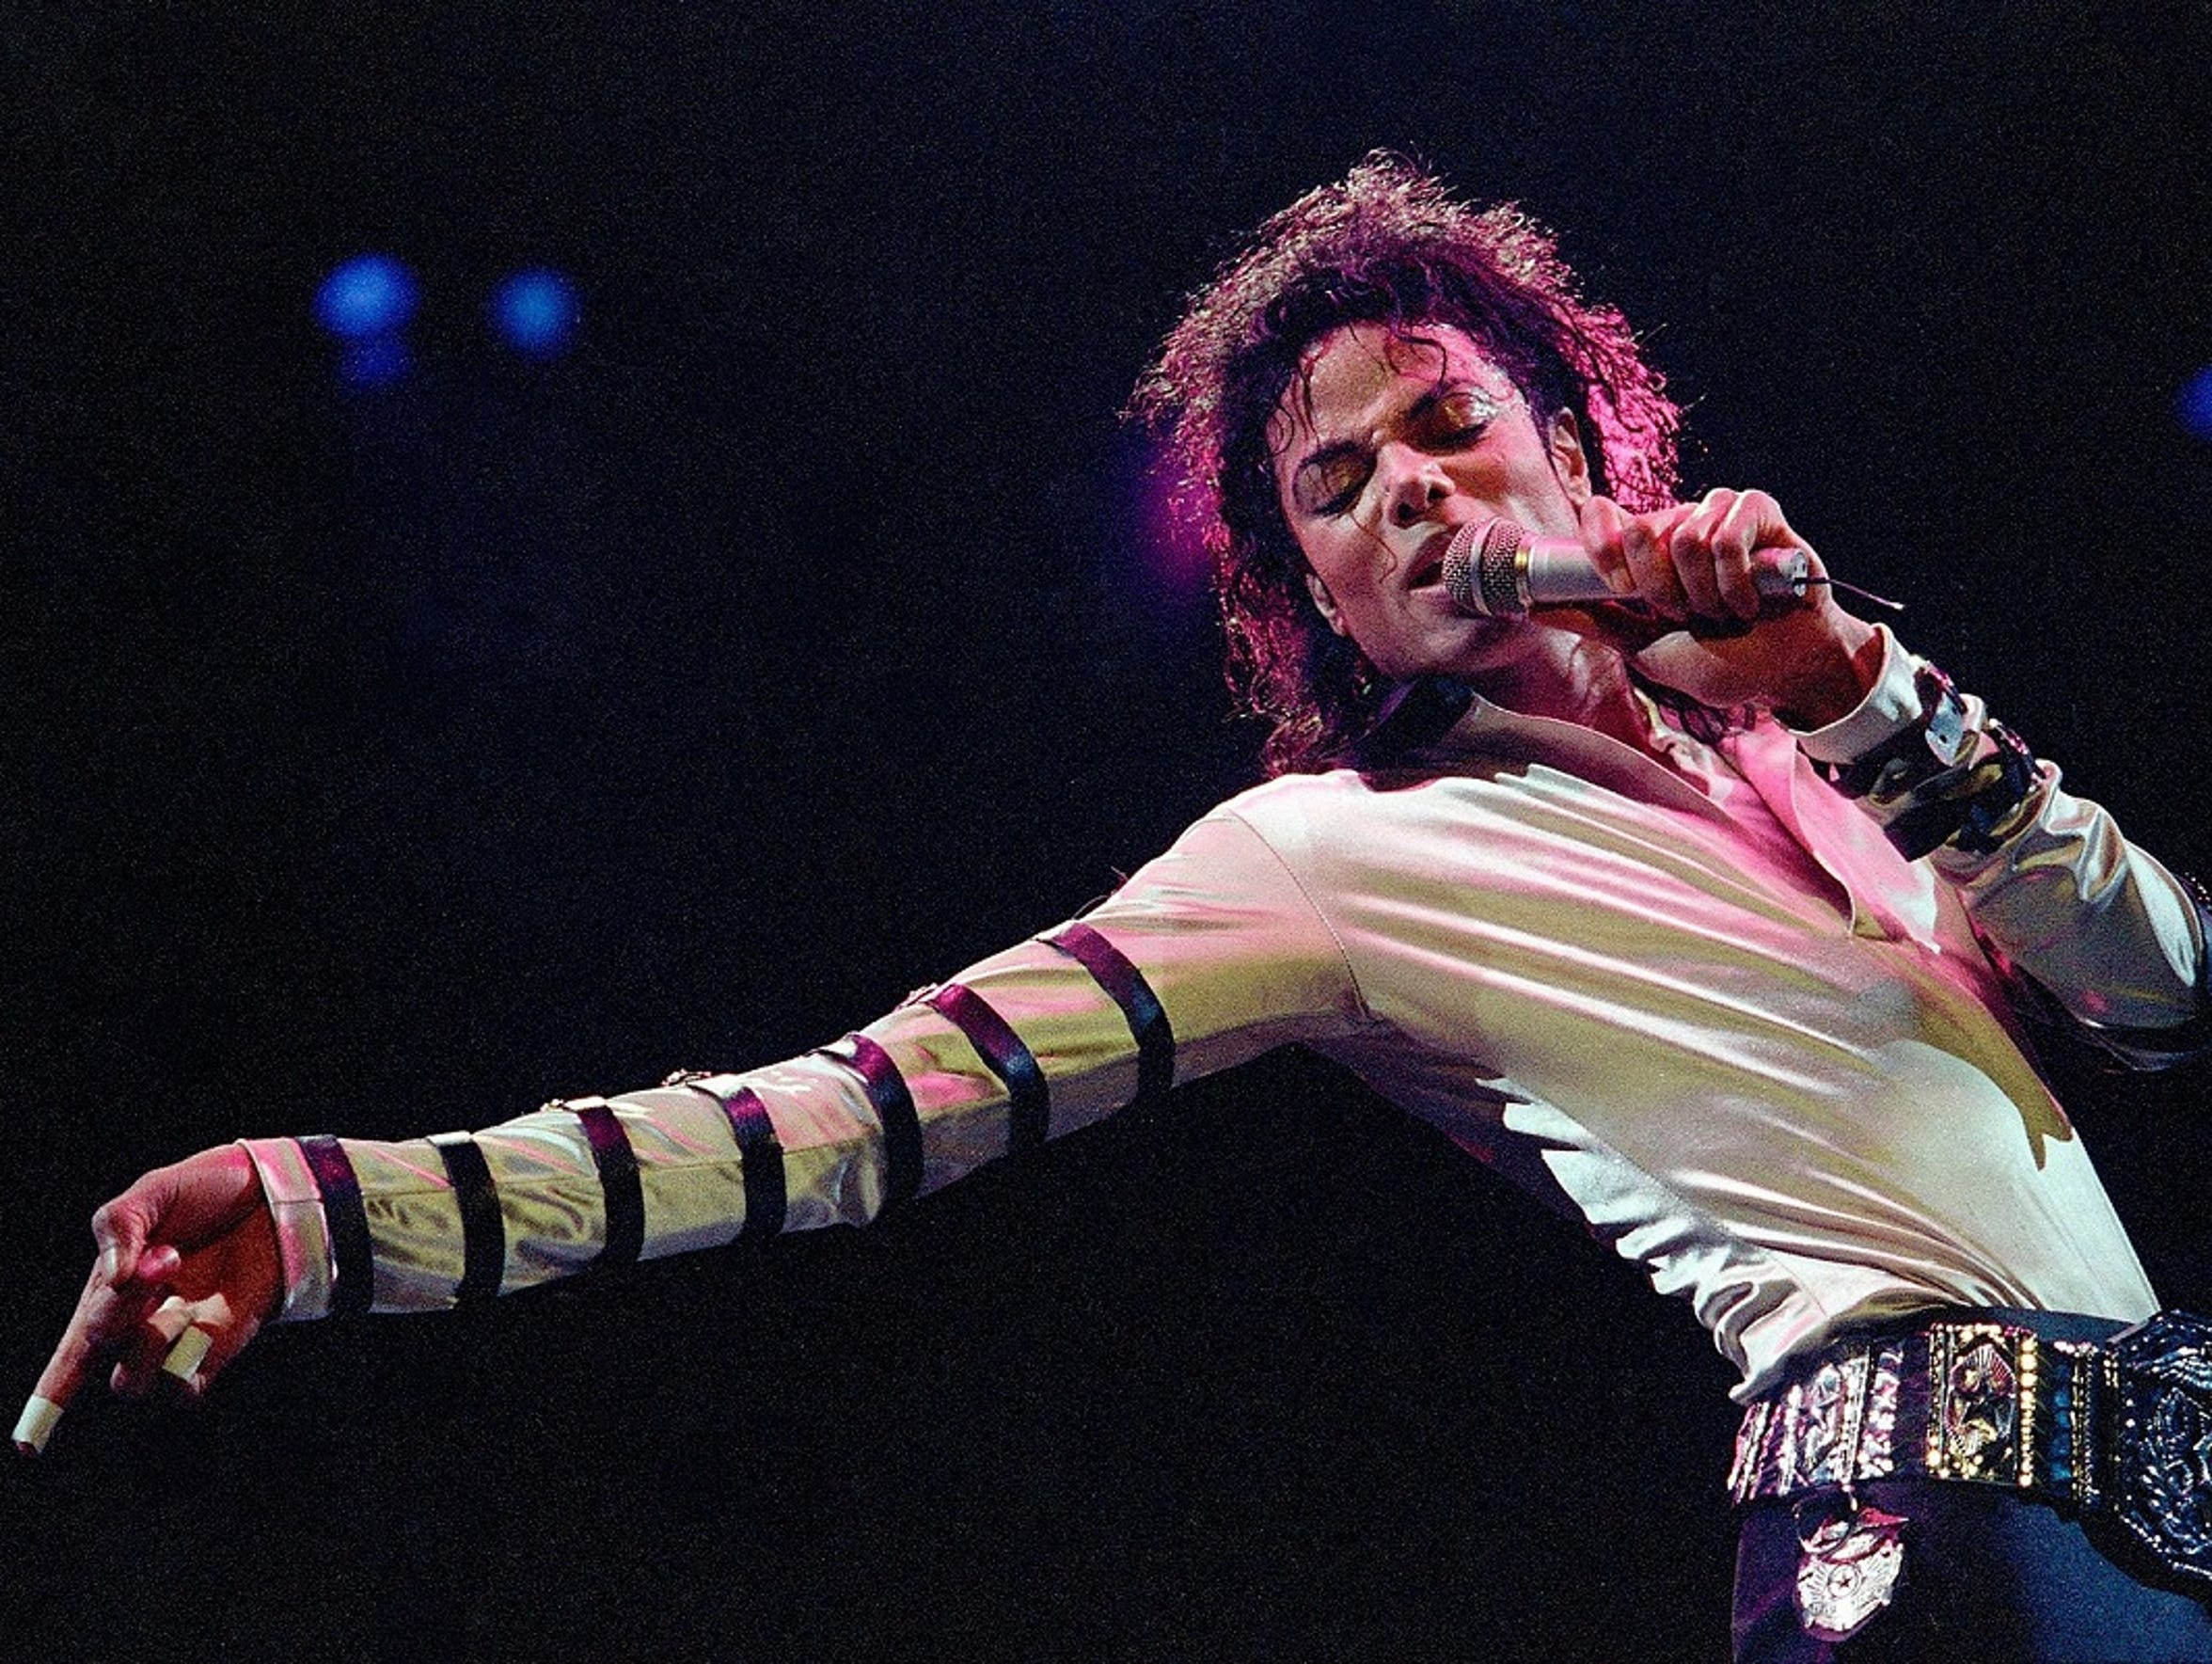 Michael Jackson sold more than 40 million copies of